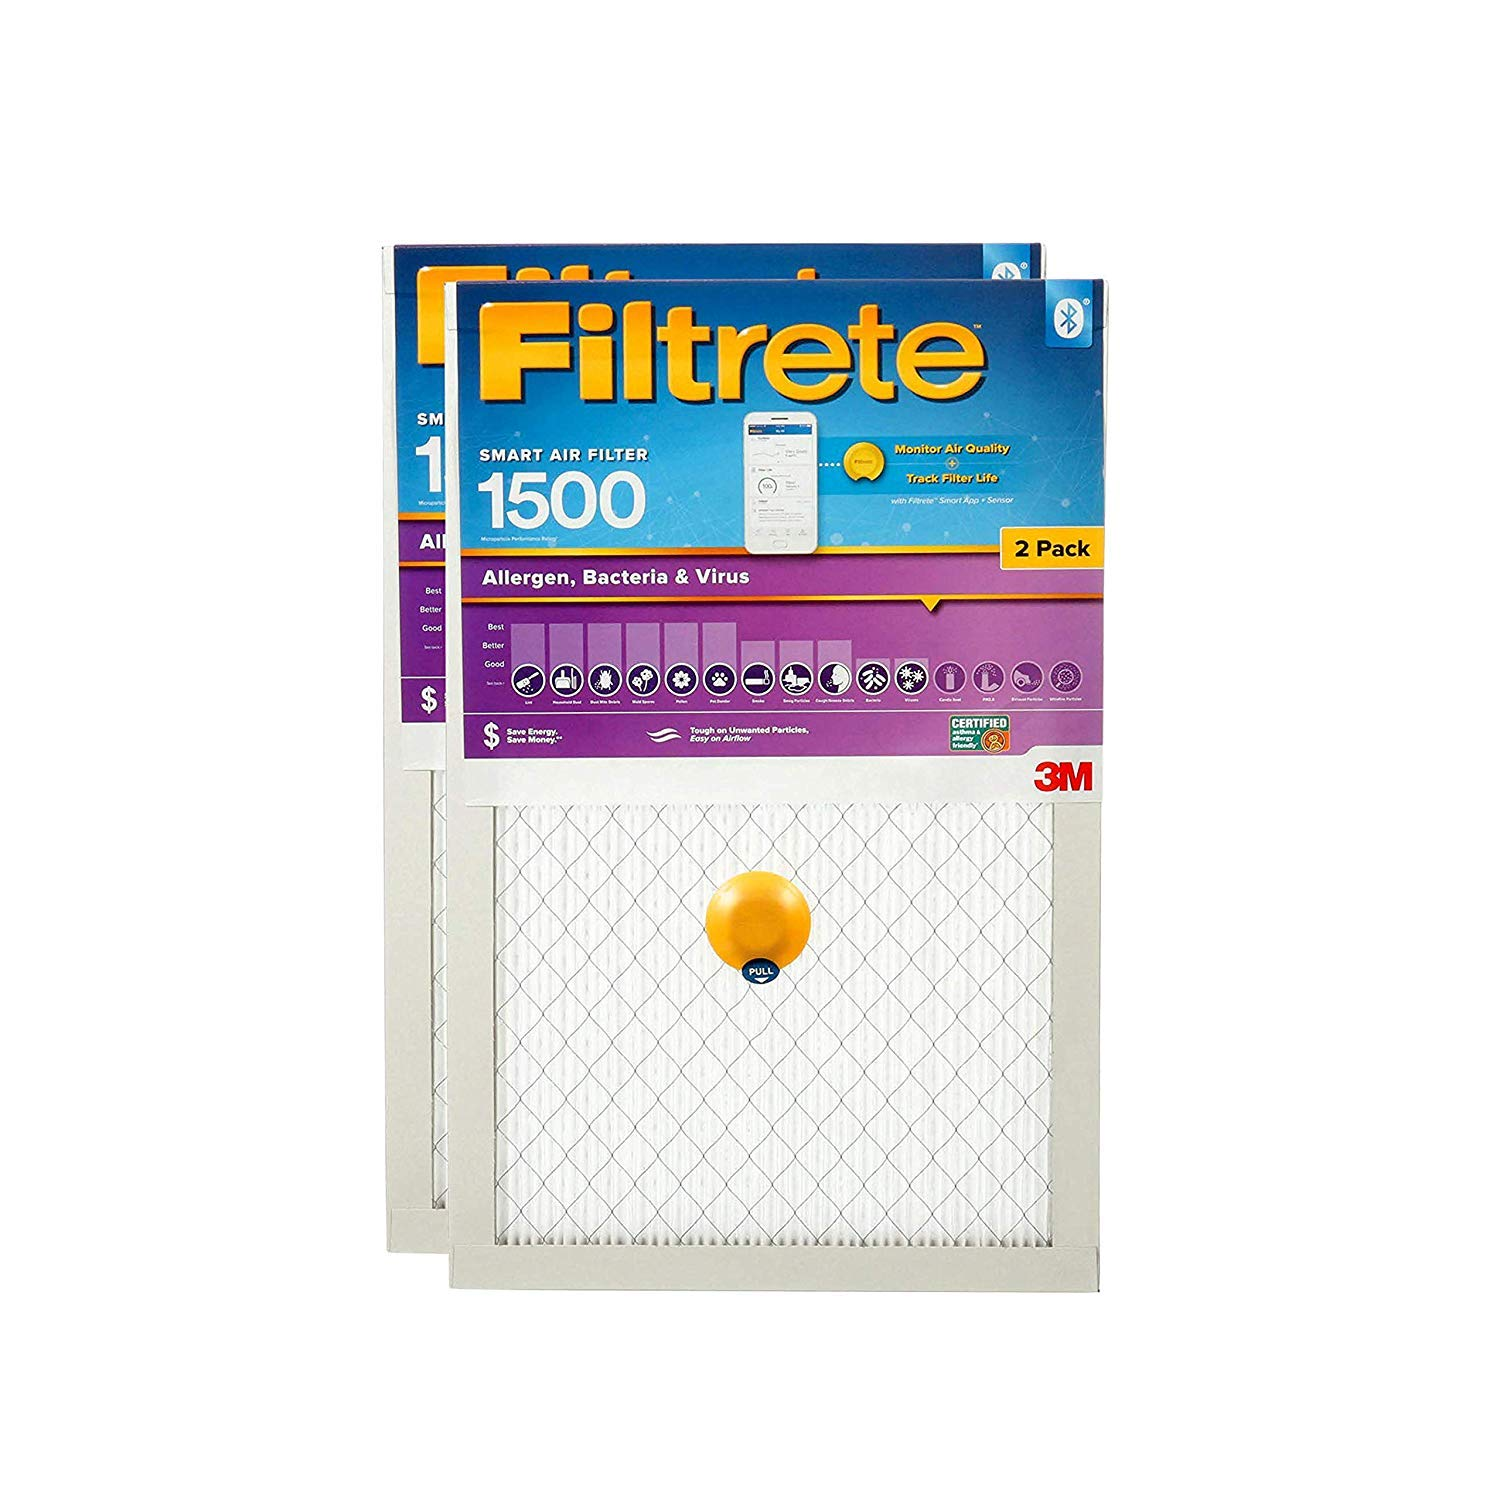 Filtrete Allergen Smart Replenishable AC Furnace Air Filter, Bacteria & Virus, MPR 1500, 20 x 20 x 1-Inches, 2-Pack